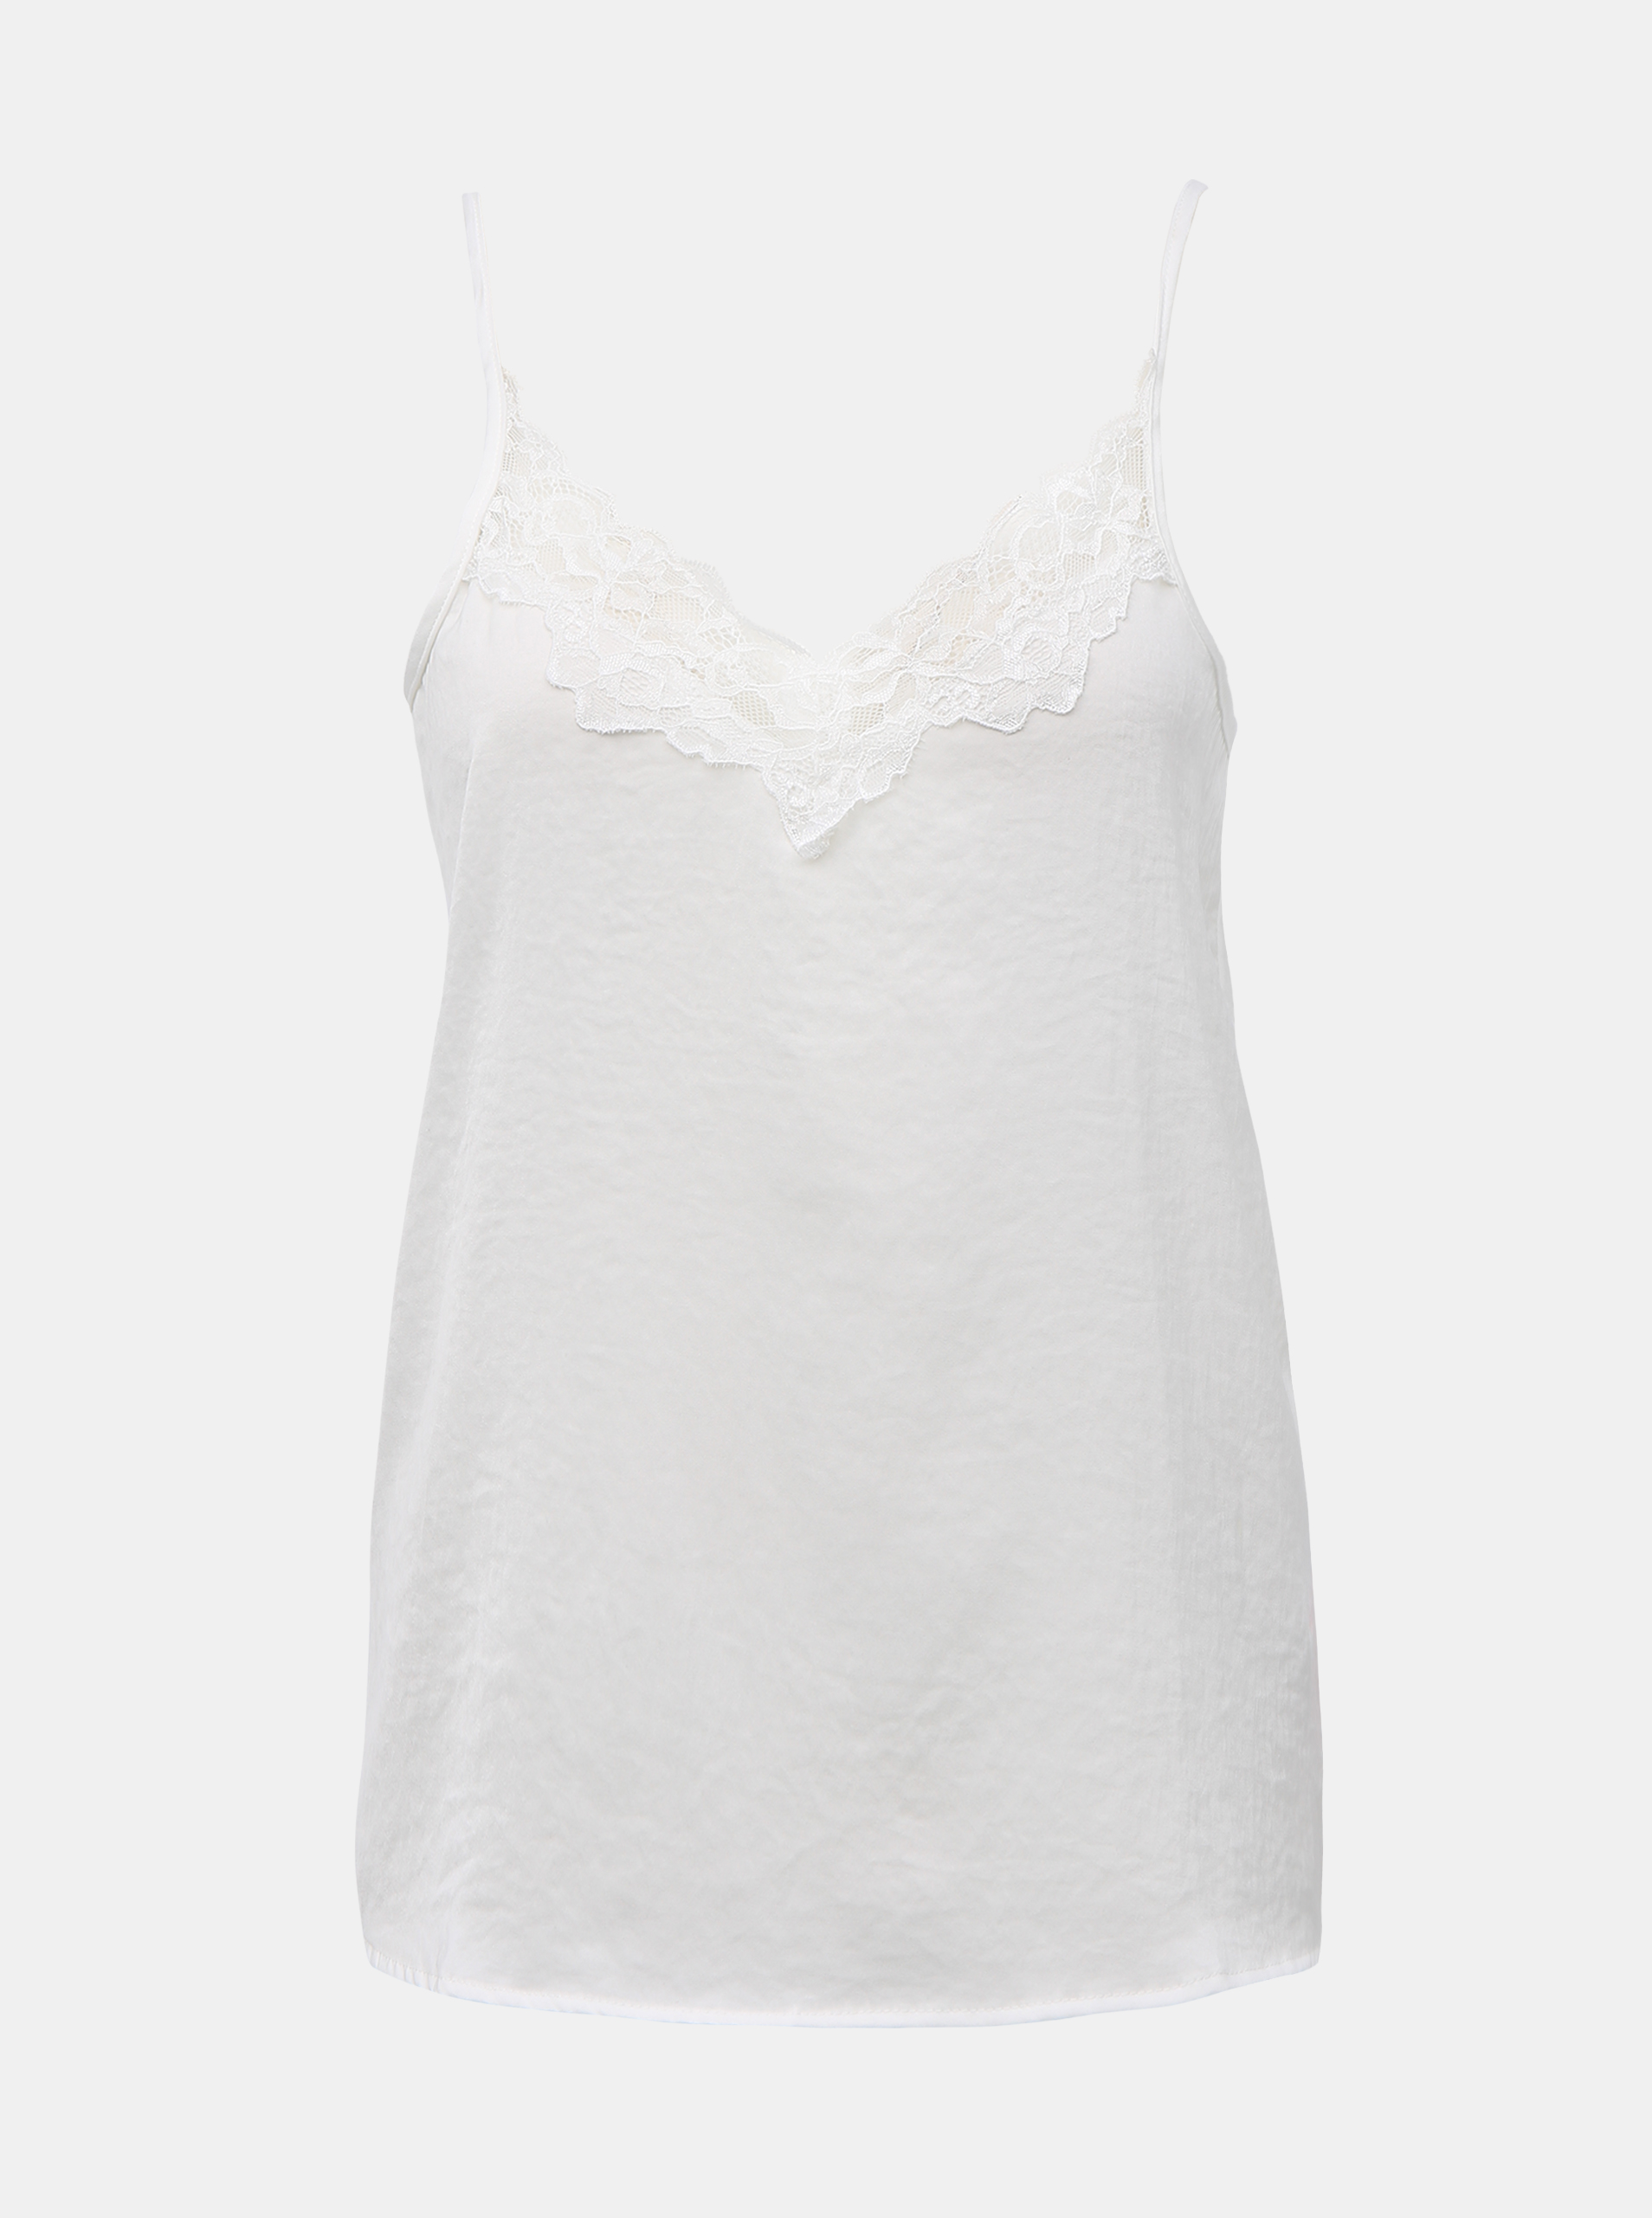 White lace top with Jacqueline de Yong Appa